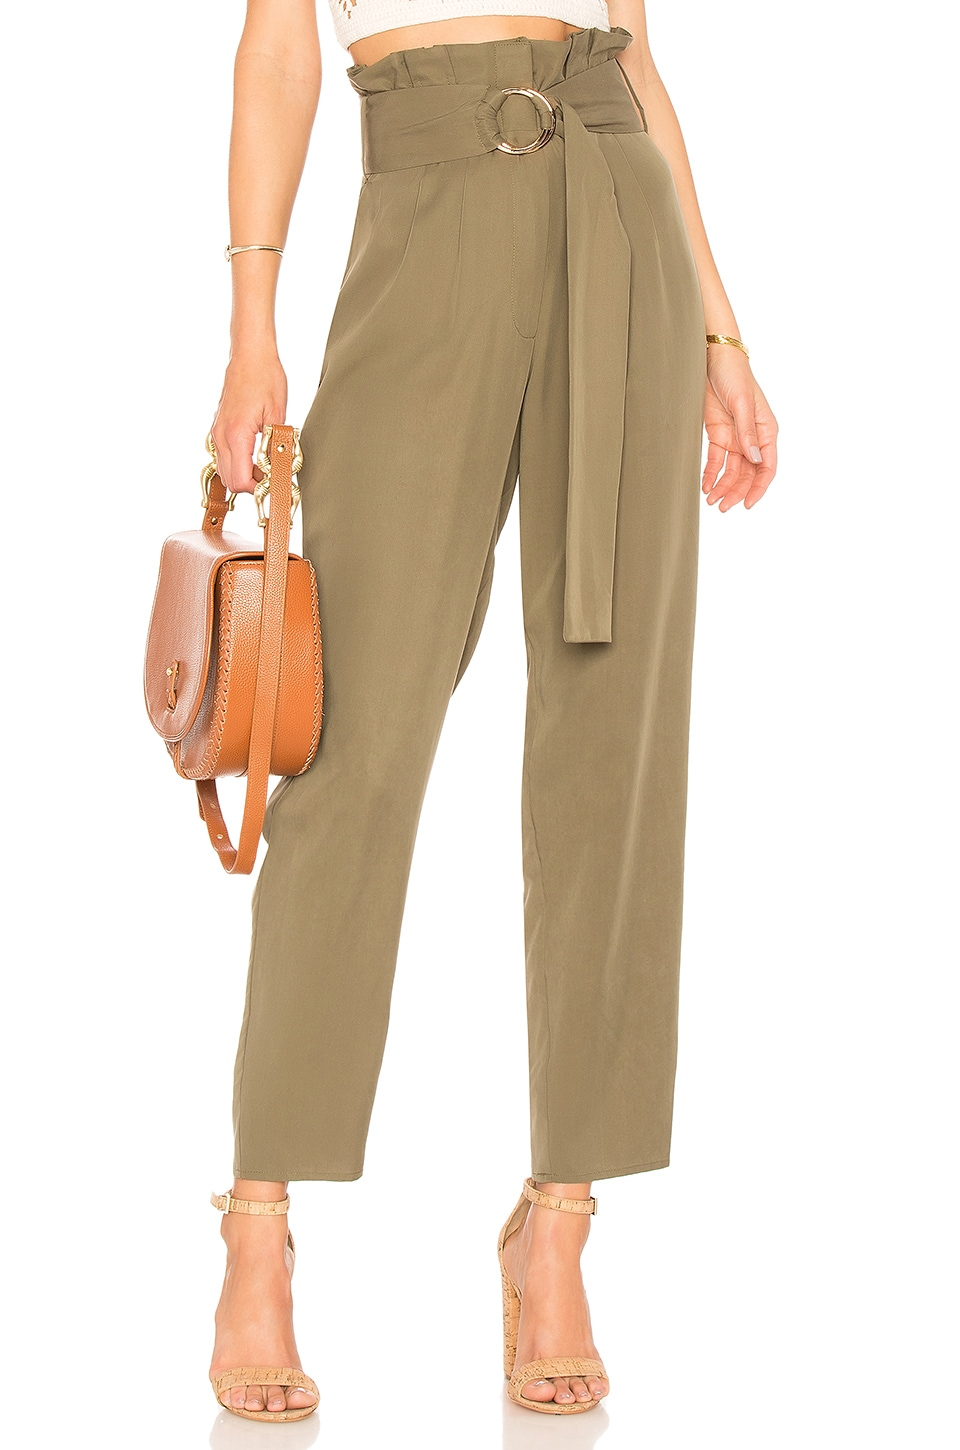 Tularosa Greyson Trouser in Olive